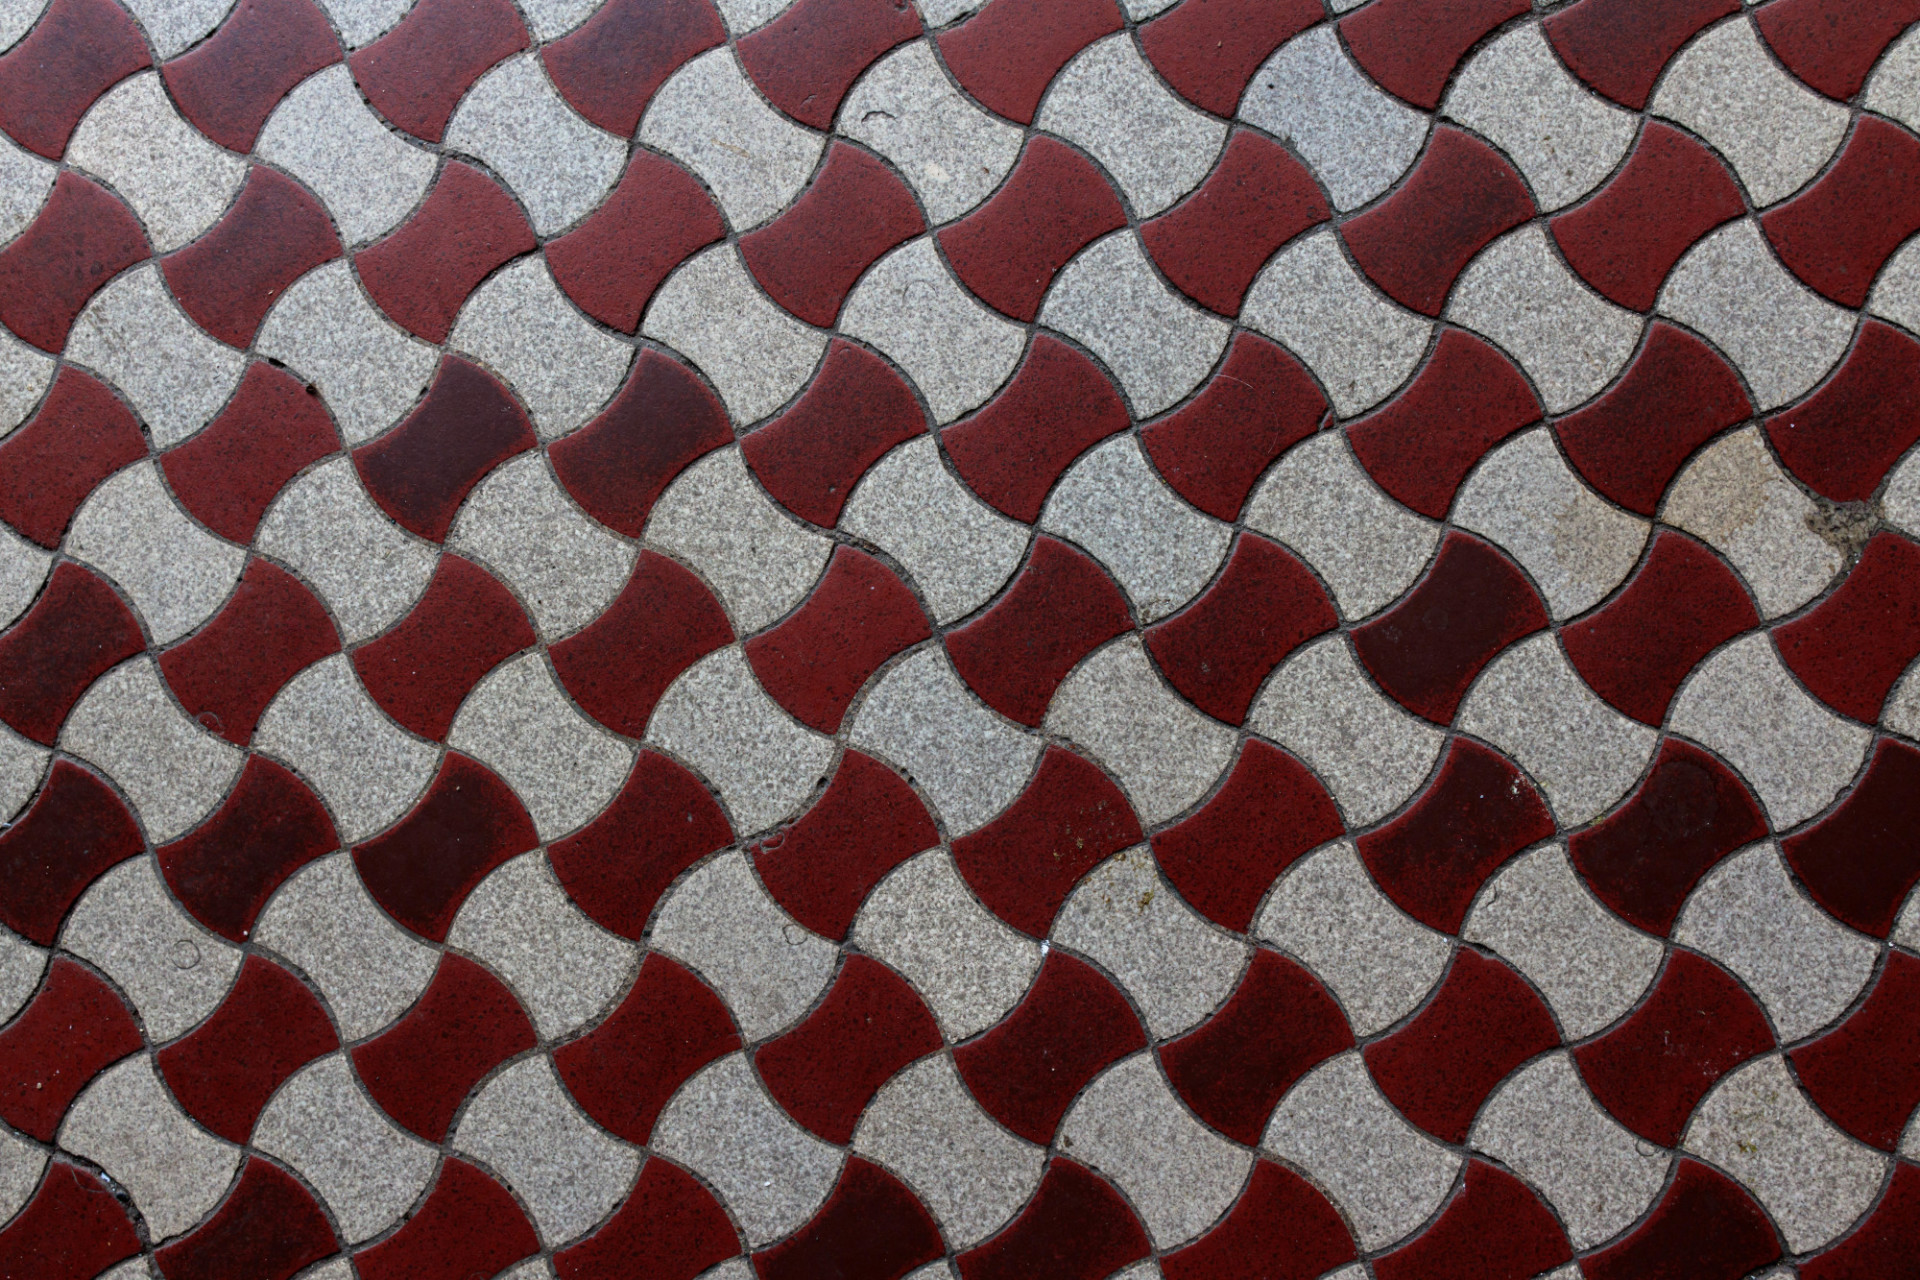 Old vintage tiles red and white